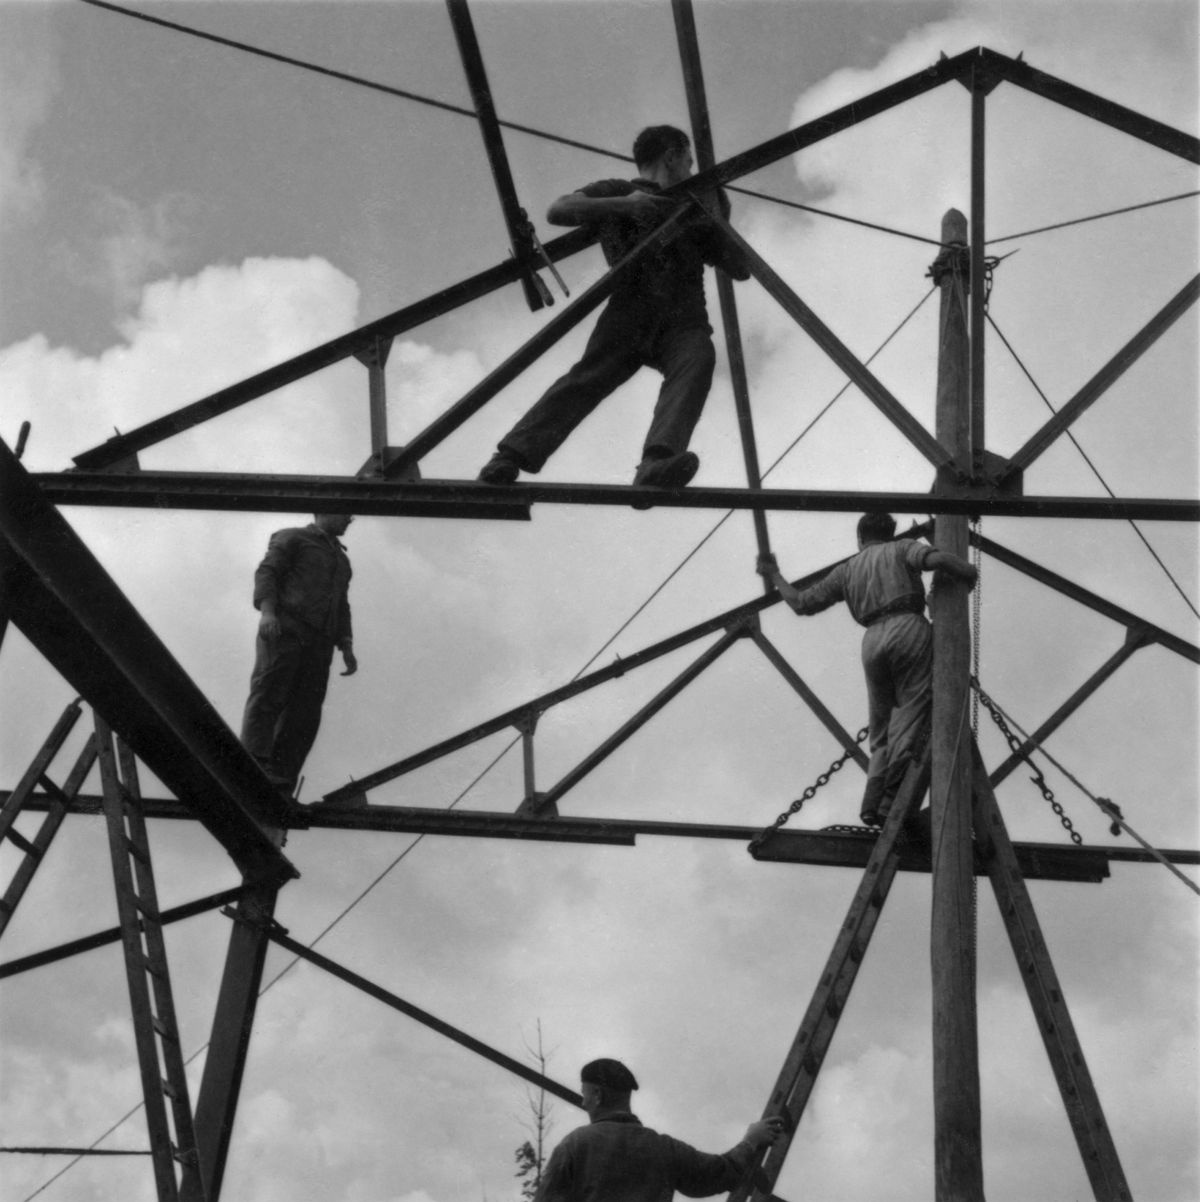 Roman Vishniac, [Zionist youth building a school and foundry while learning construction techniques, Werkdorp Nieuwesluis, Wieringermeer, The Netherlands], 1939. Gelatin silver print. © Mara Vishniac Kohn, courtesy International Center of Photography.